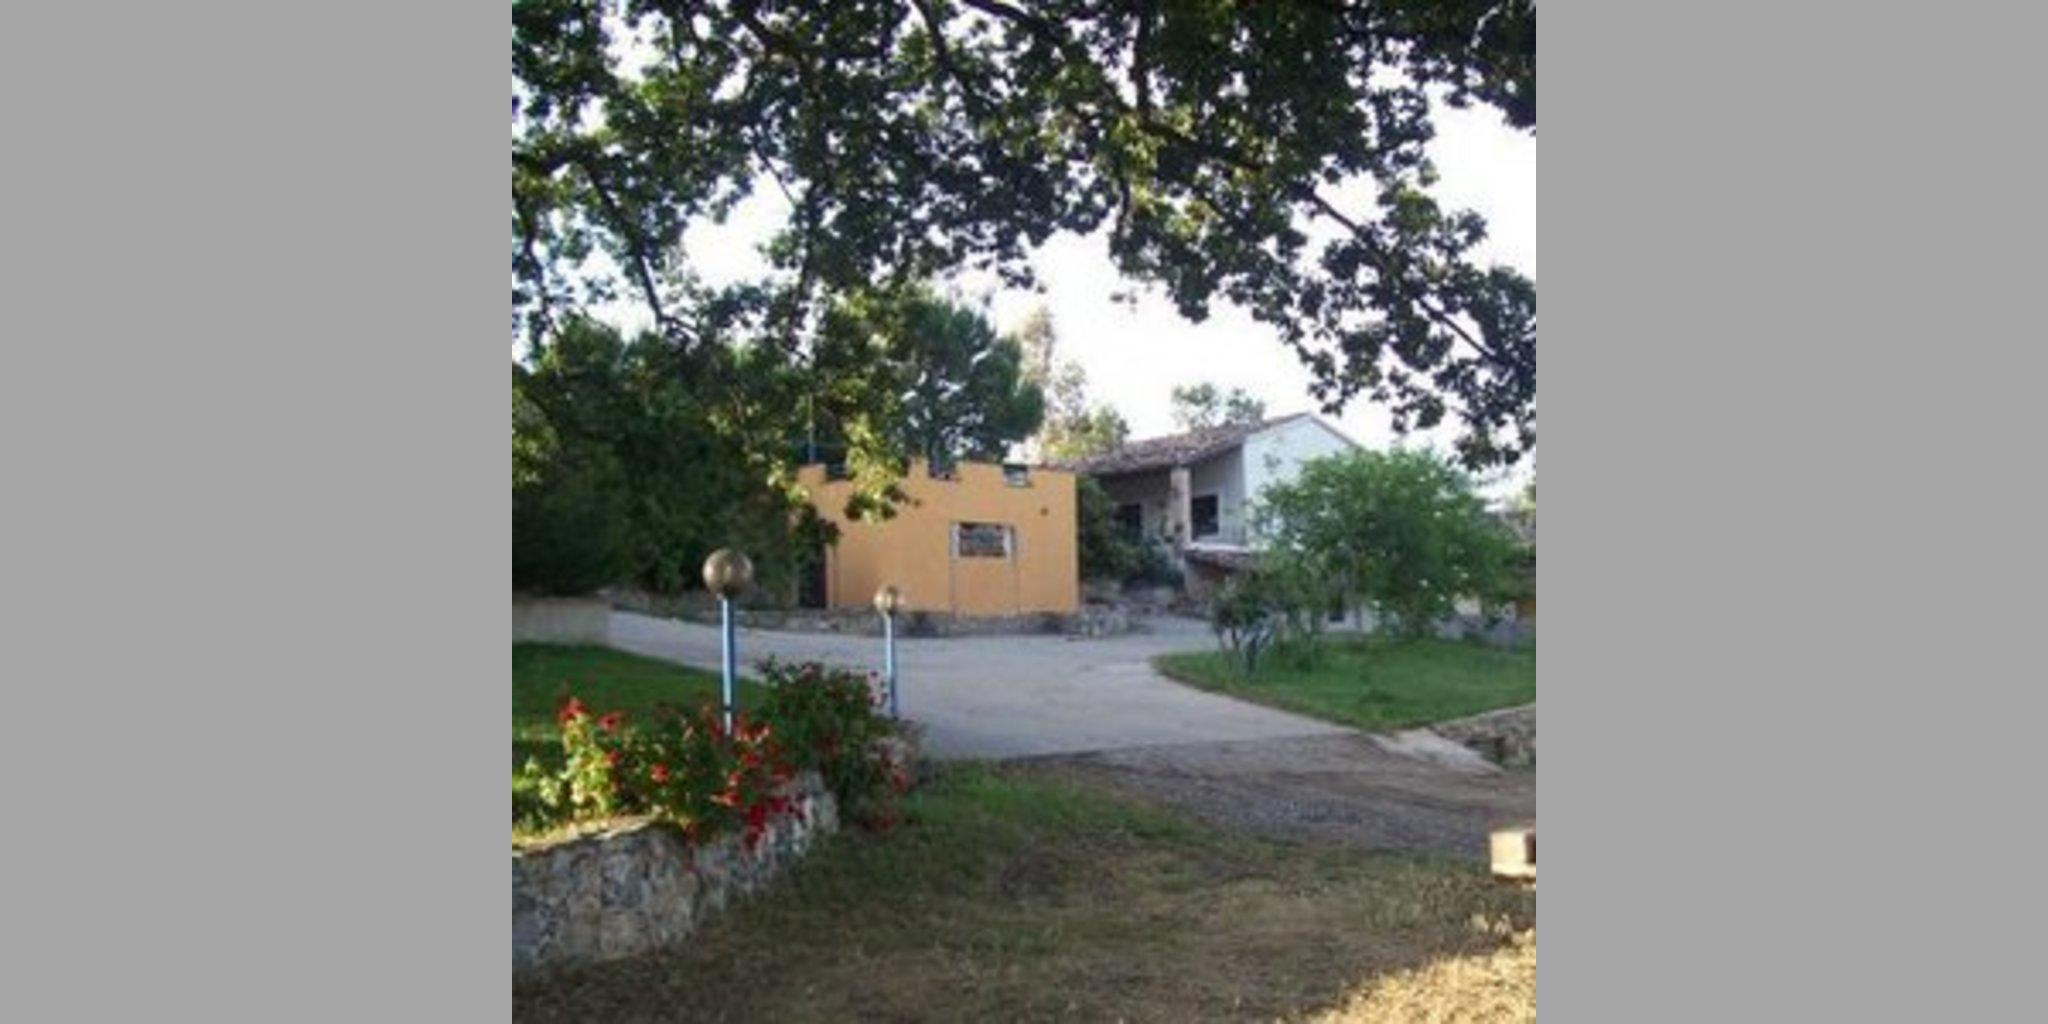 Casa Rural Altomonte - Altomonte_Boscari